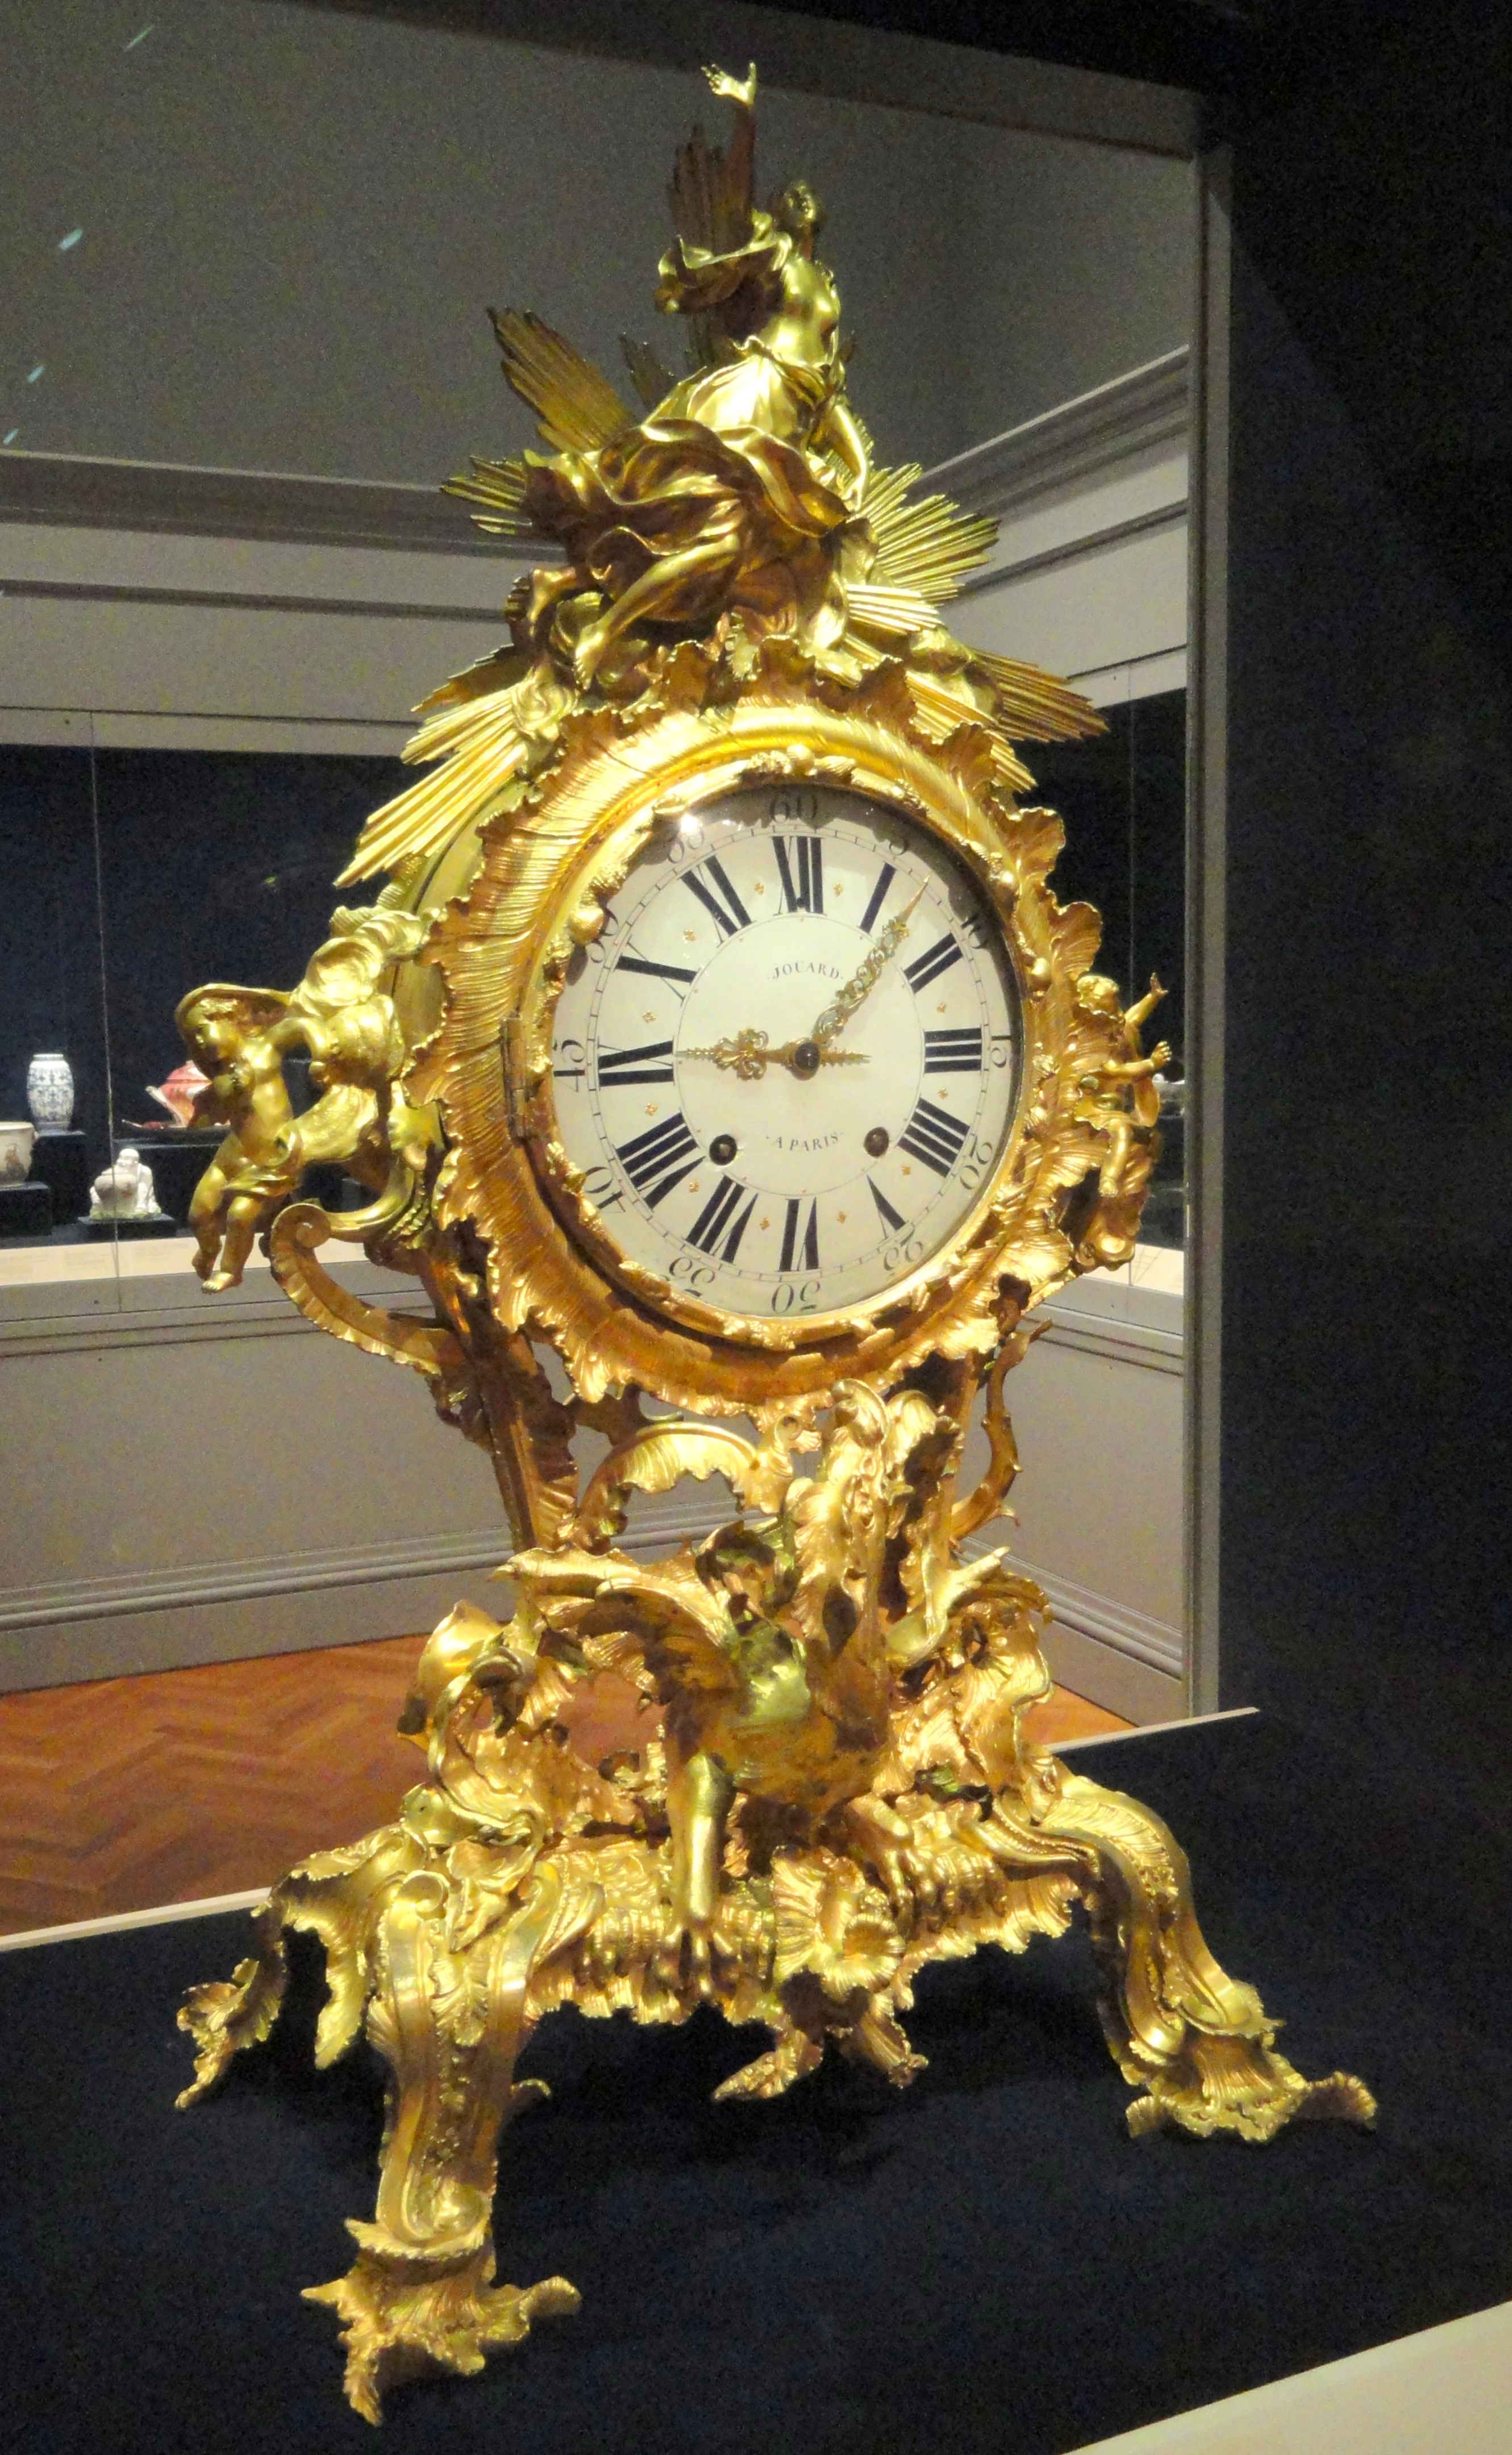 File:Clock, about 1750, France, gilt bronze - Cleveland Museum of ...